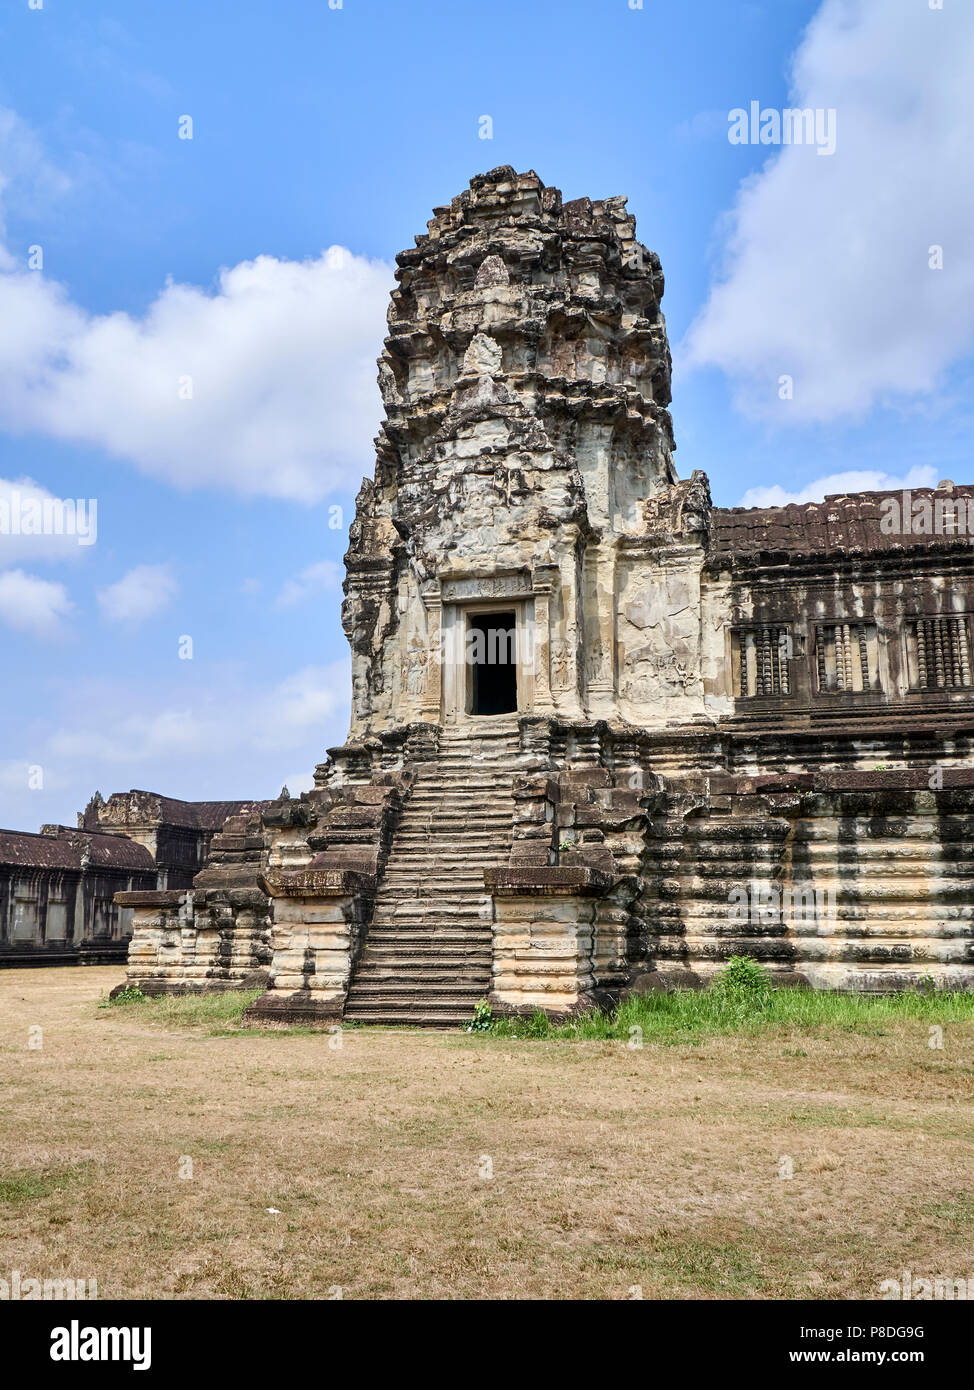 Architecture inside Angkor Wat, Siem Reap, Cambodia - Stock Image